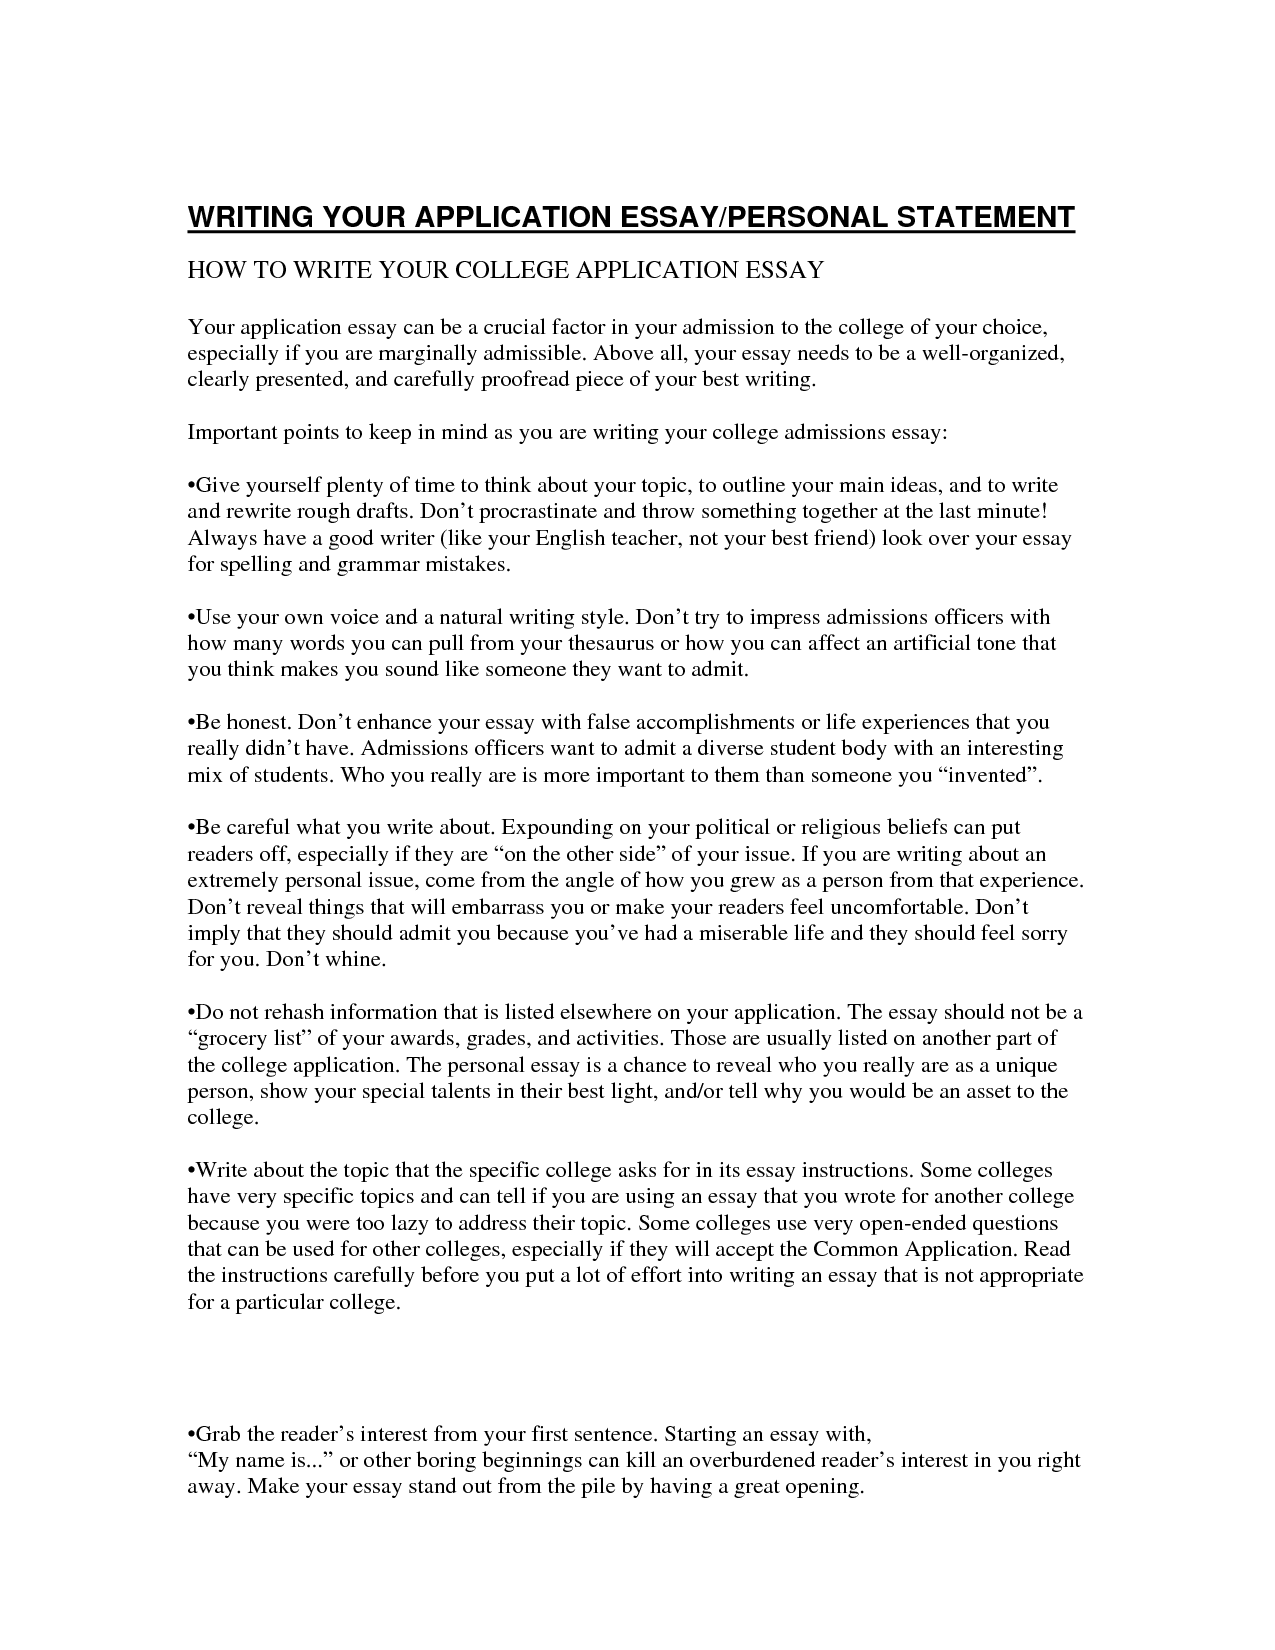 essay examples college scholarship essay examples good college - How To Start A College Essay Examples